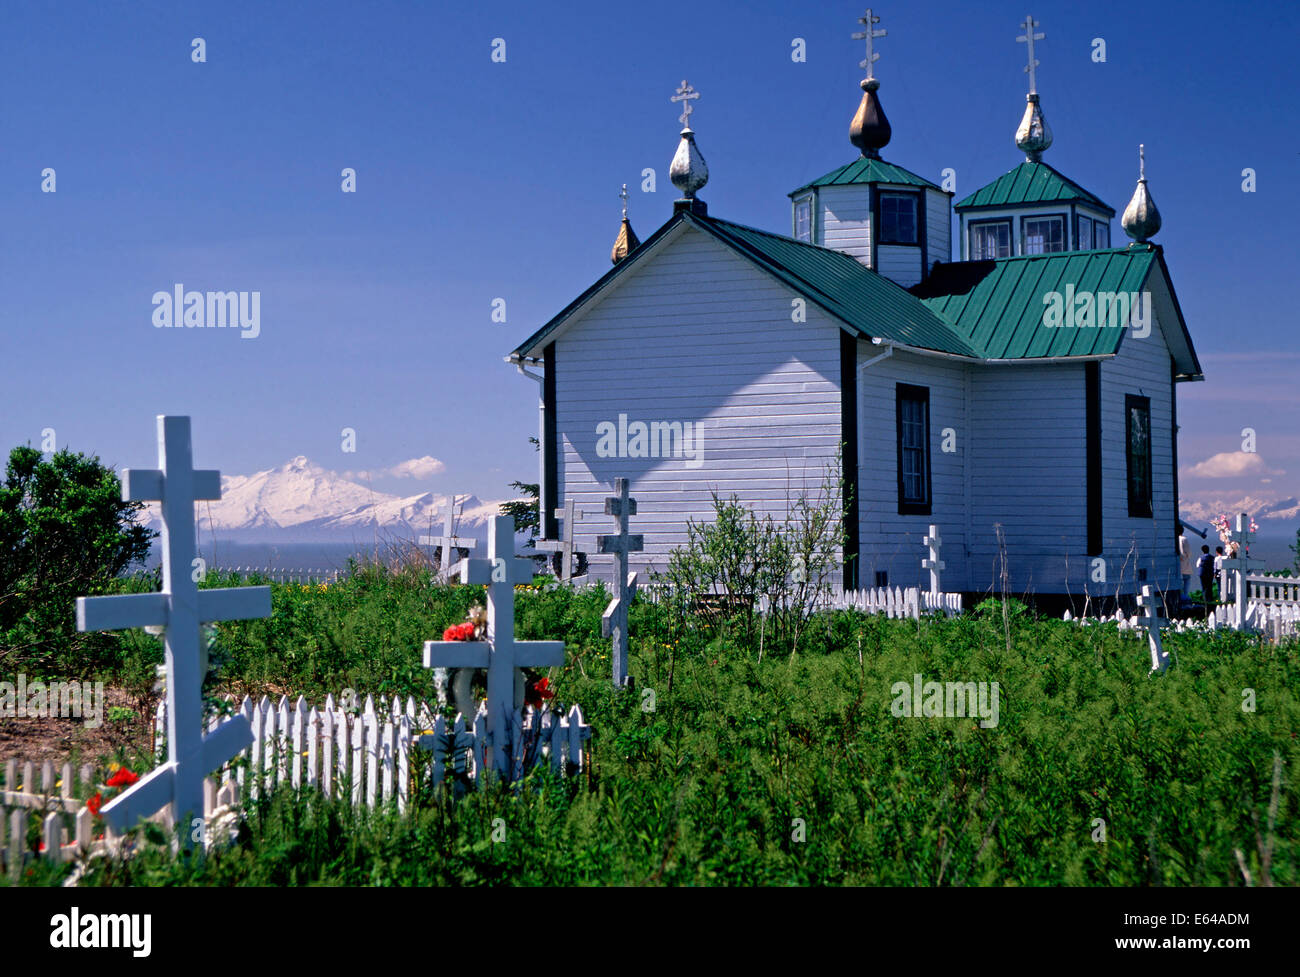 The Holy Transfiguration of Our Lord Russian Orthodox Church,Ninilchik,Alaska - Stock Image